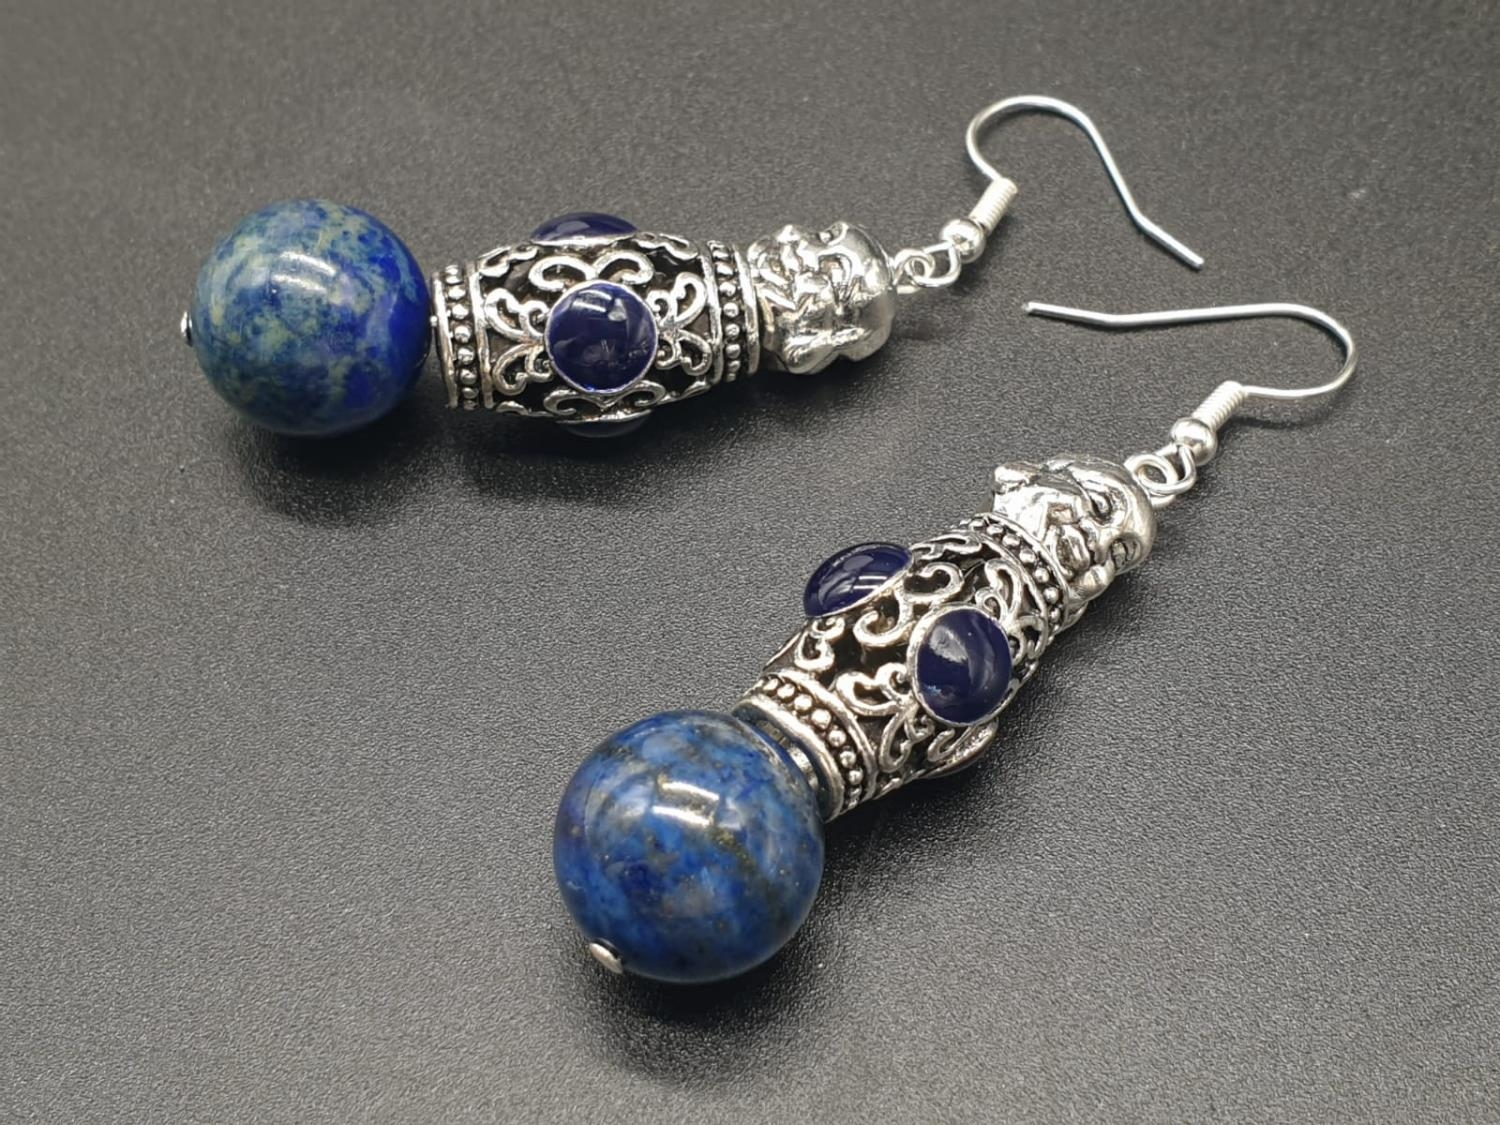 A Tibetan Buddhist lapis lazuli necklace and earrings set in a presentation box. Necklace length: - Image 8 of 11